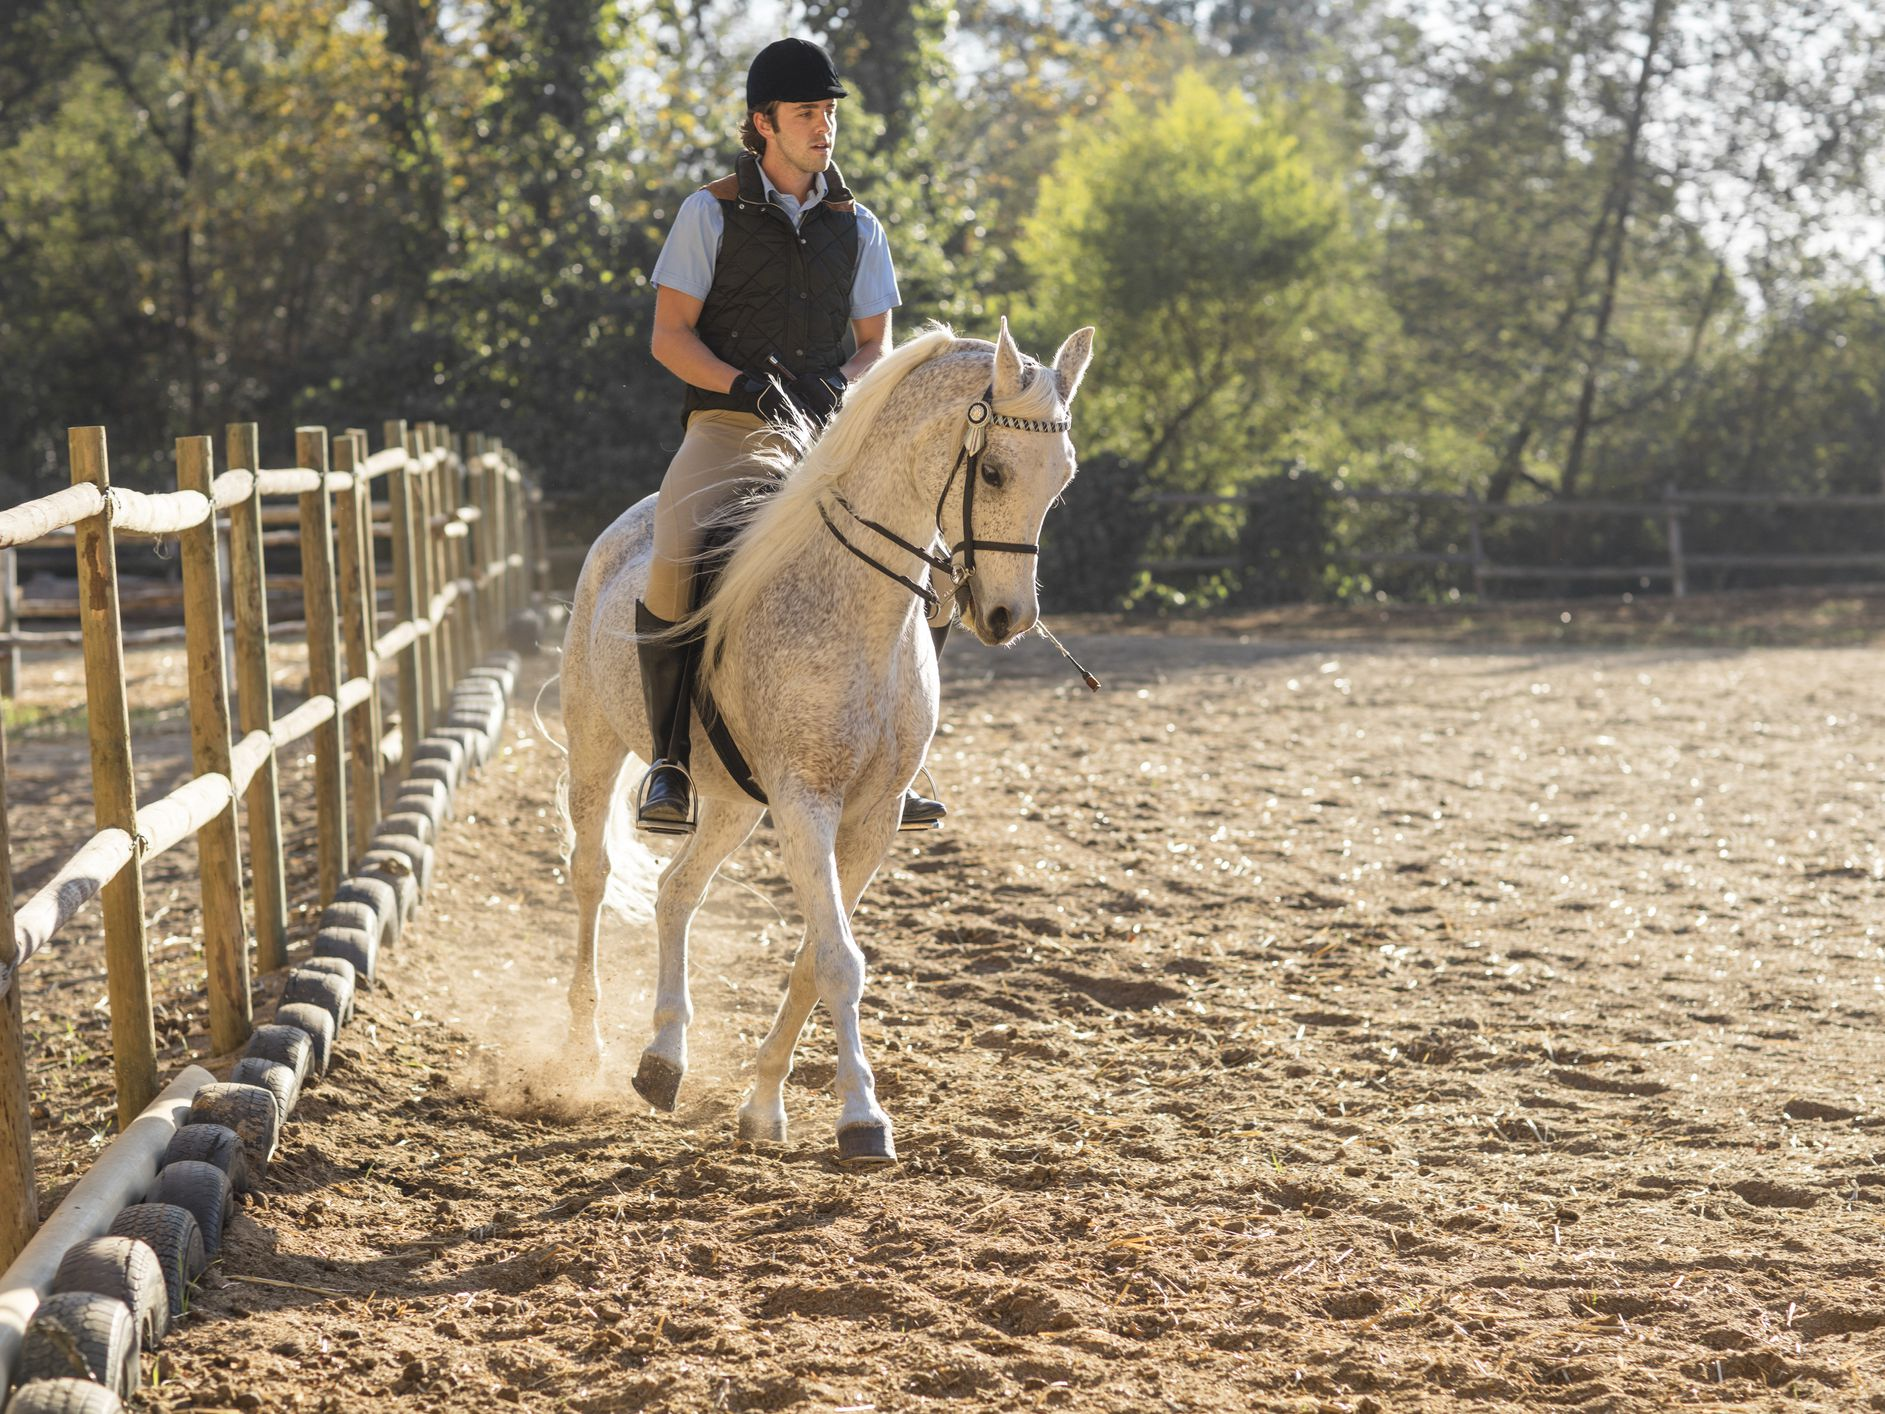 How To Dress Comfortably And Safely For Horseback Riding